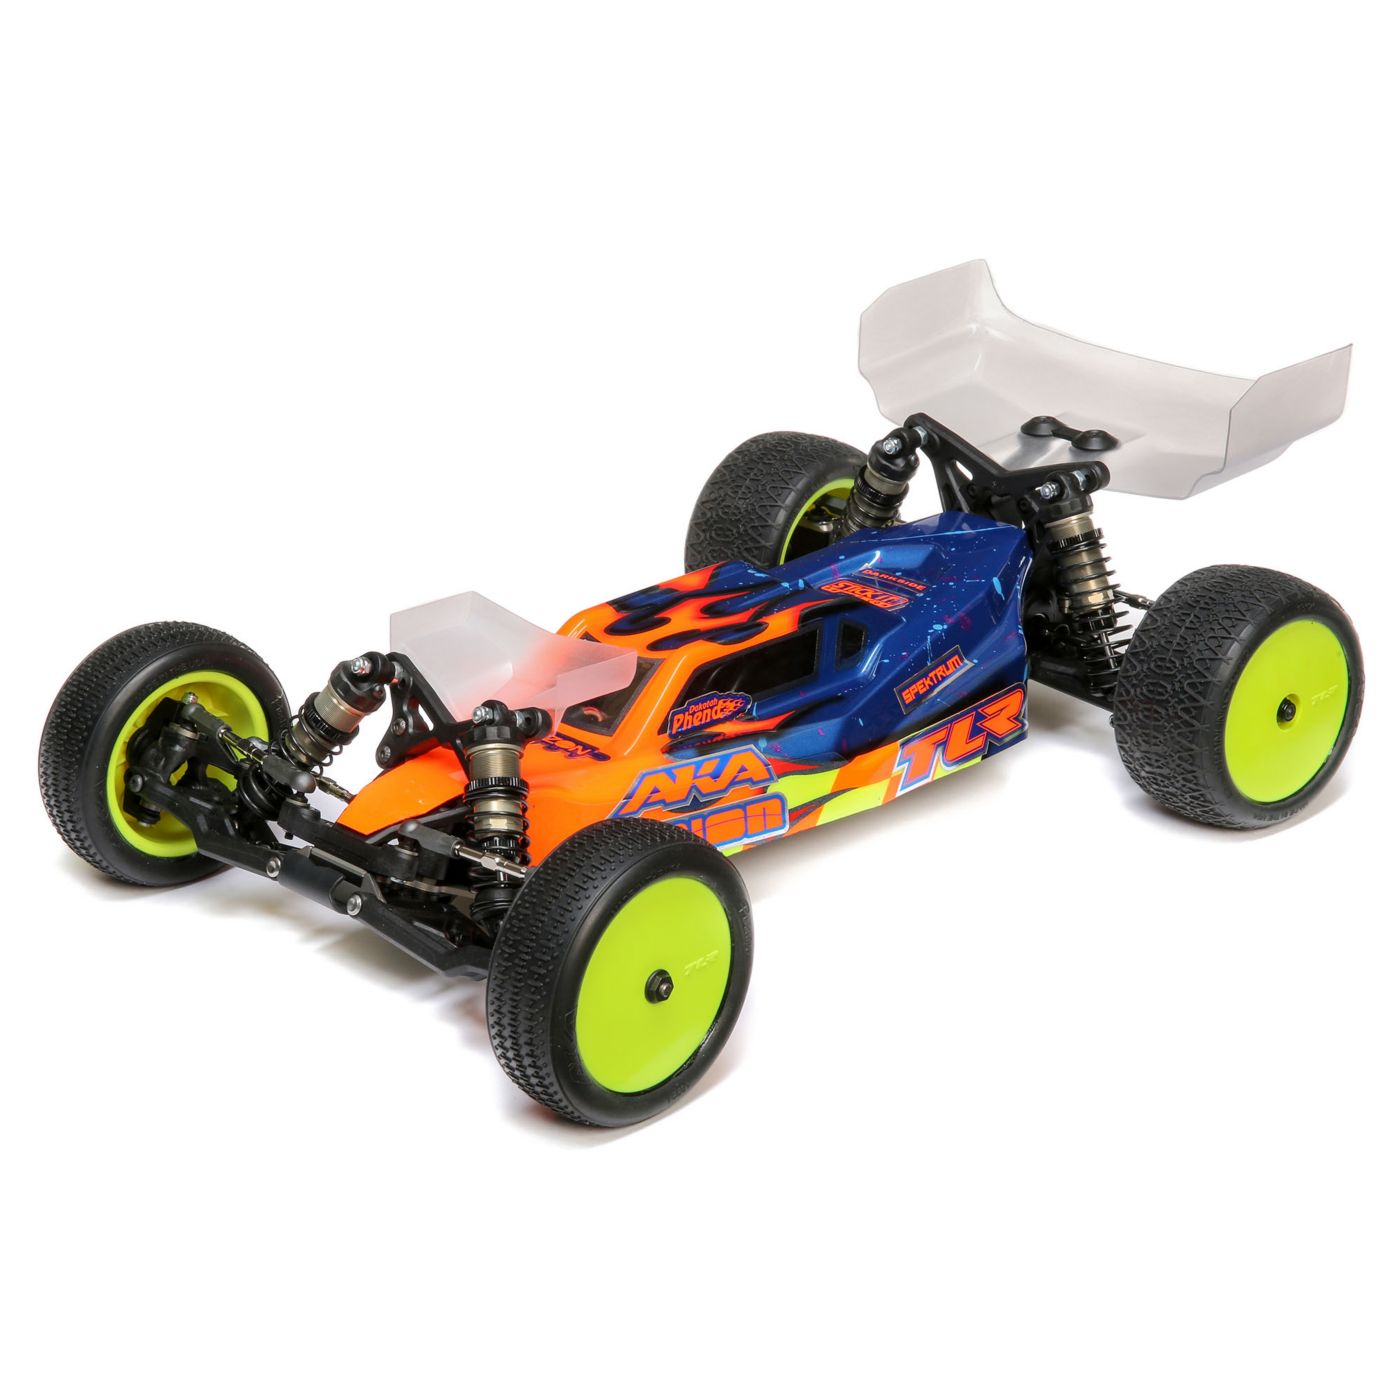 TLR 1:10 22 5.0 / 4.0 2wd Buggy